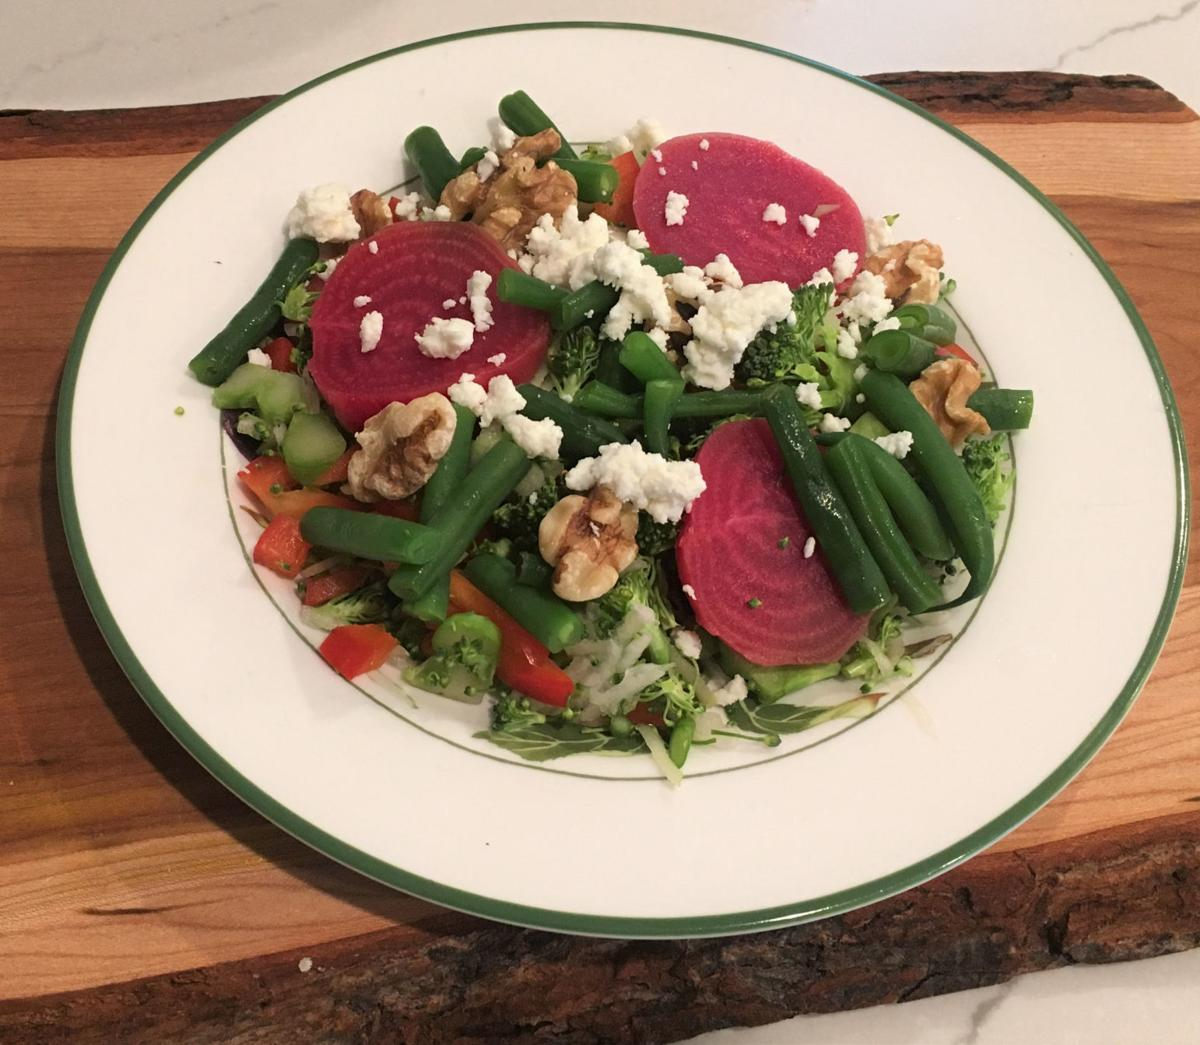 jerome-chopped salad with beets, walnuts, green beans and goat cheese.jpg